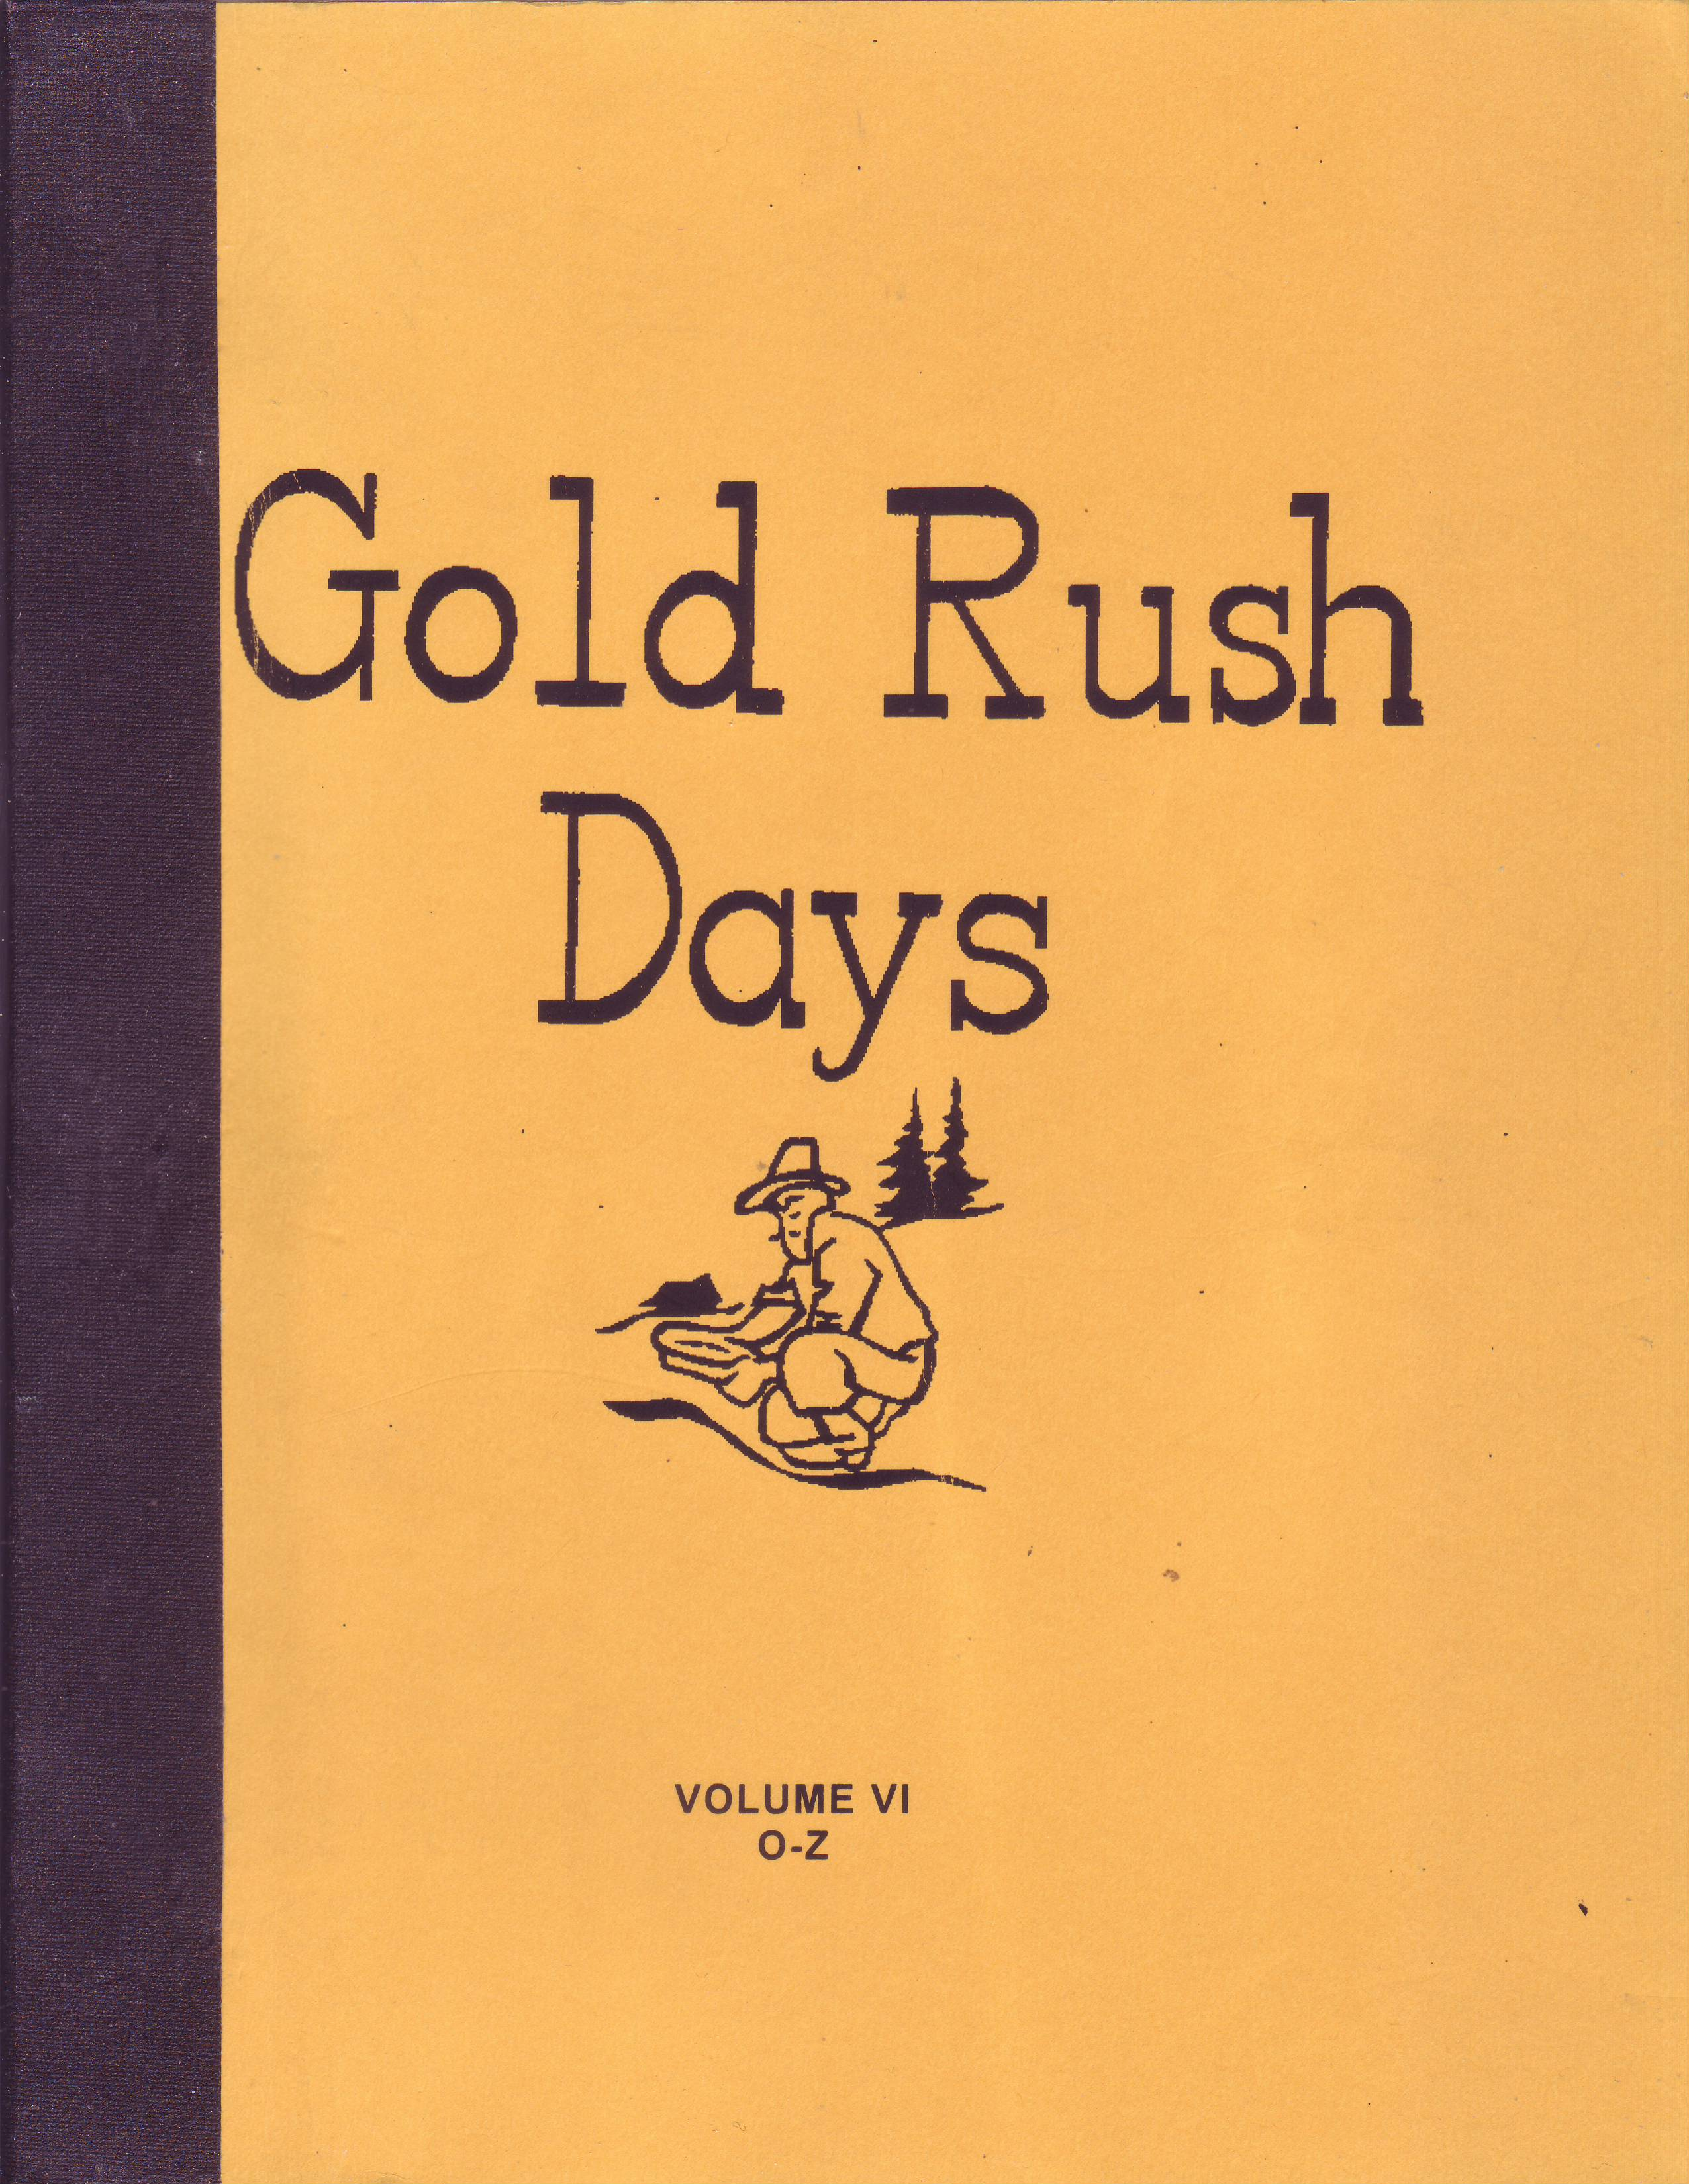 Gold Rush Days, Volume VI, O-Z